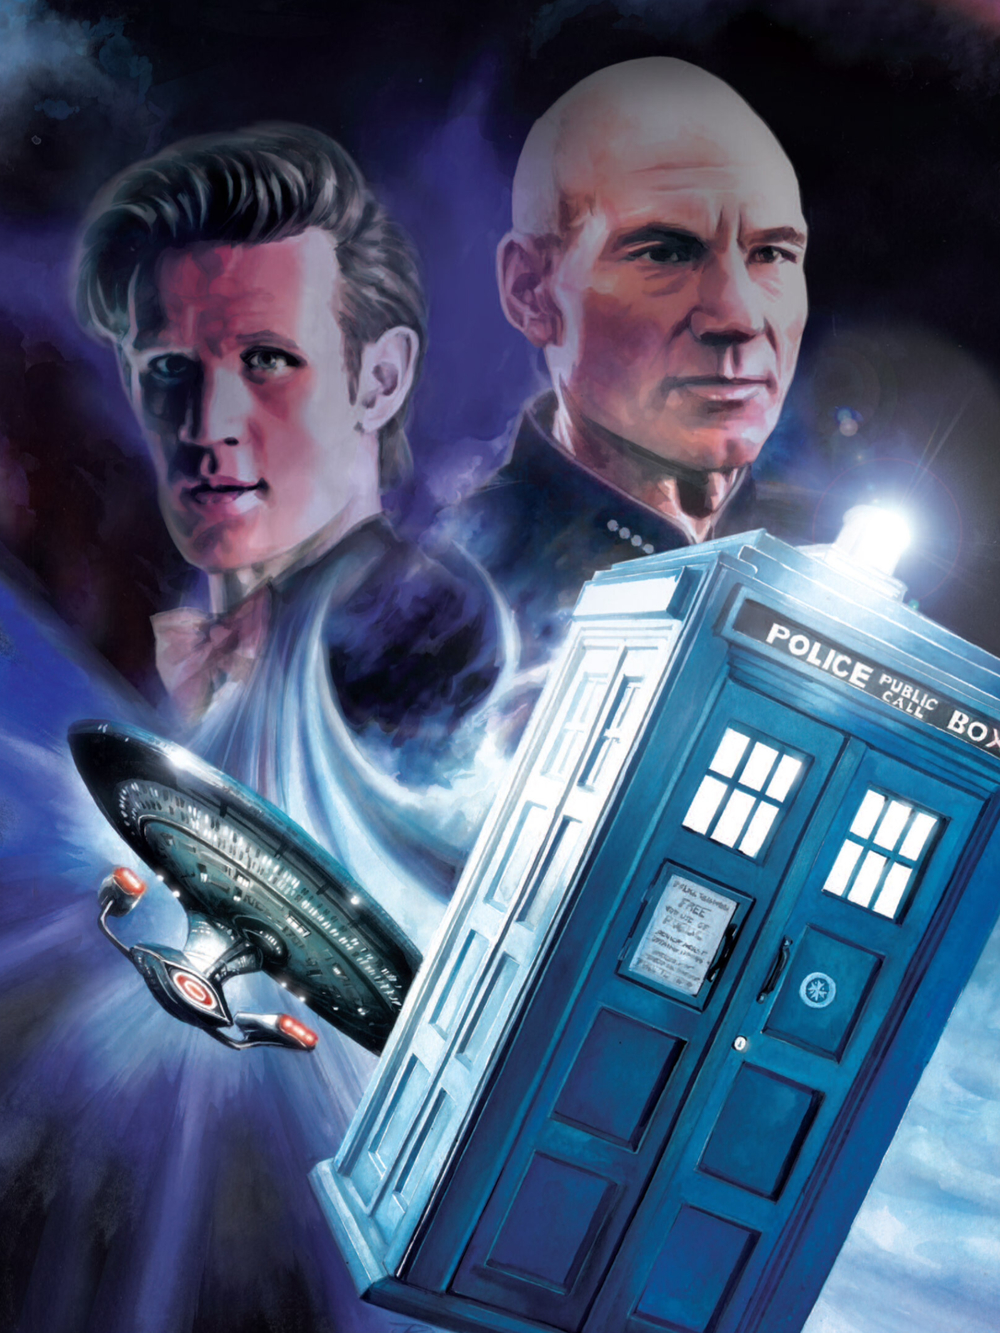 The more I learned about Doctor Who, the more it reminded me of other scifi shows that I love. Illustration by J. K. Woodward for IDW Comics.